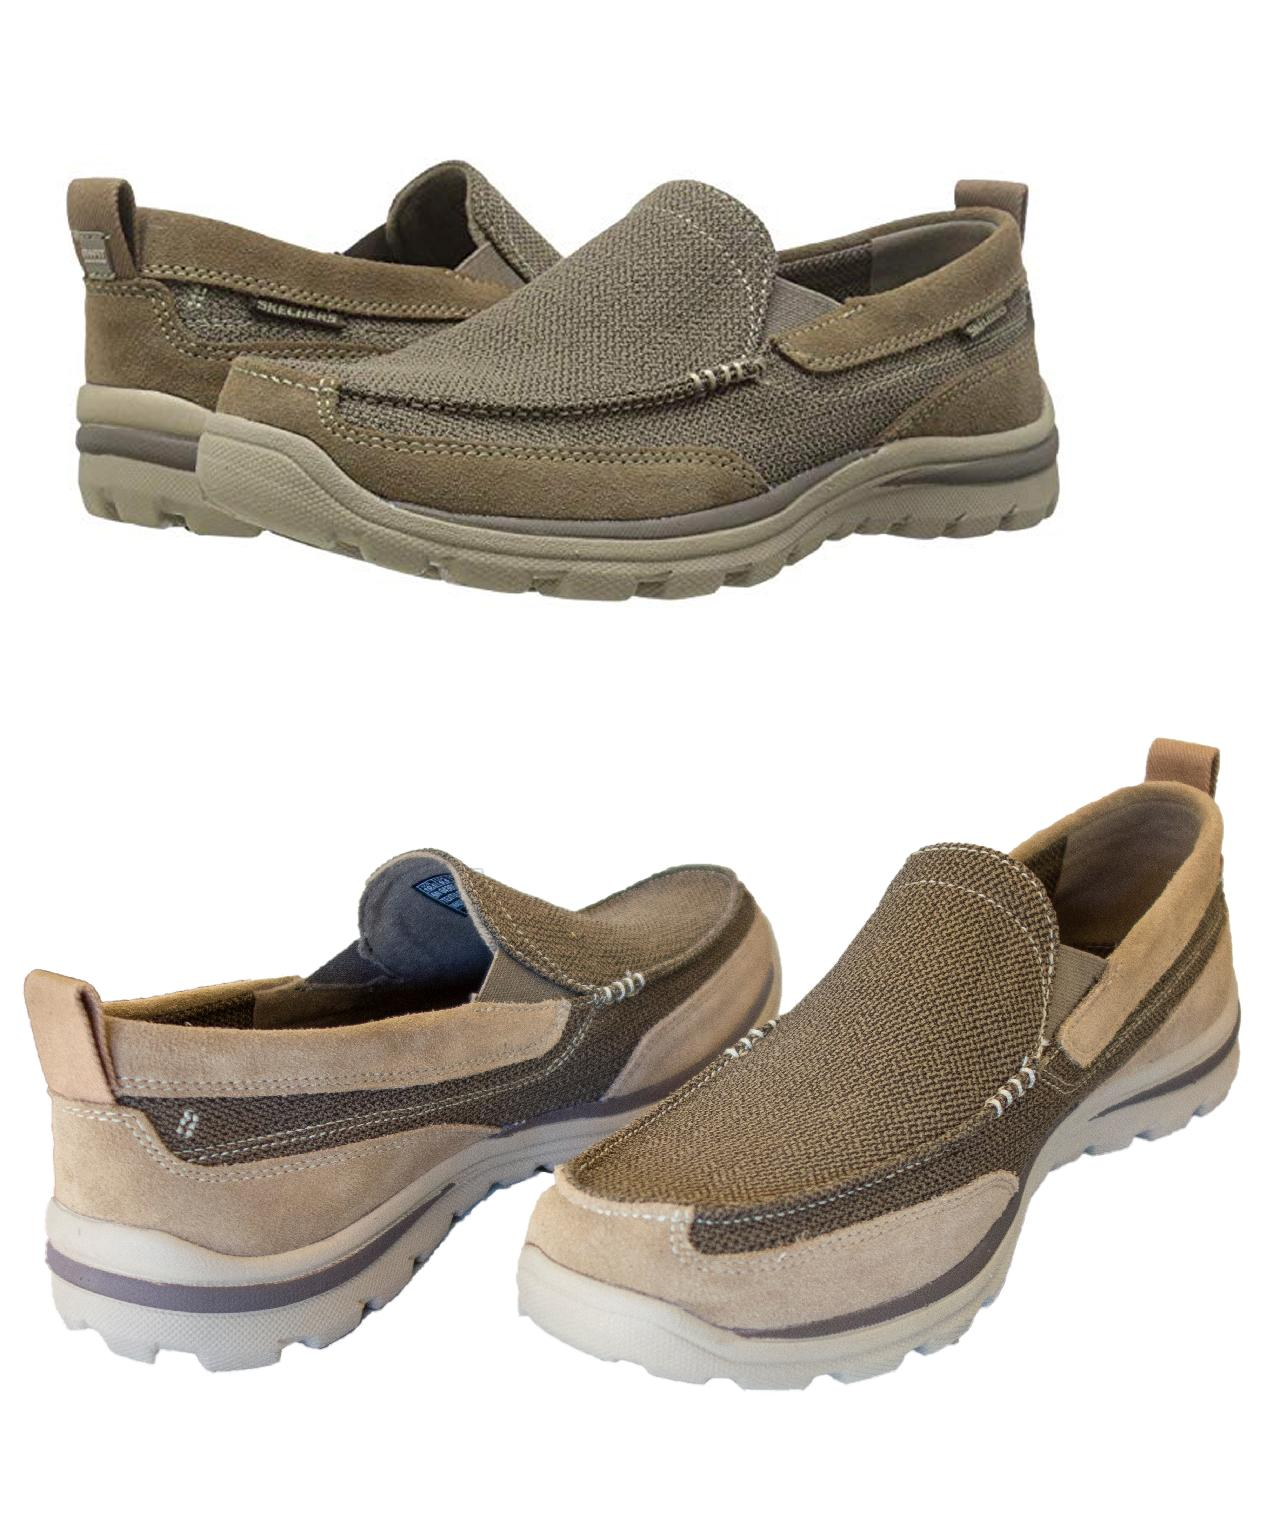 abc5b675 SKECHERS Relaxed Fit Superior - Milford | Zappos.com